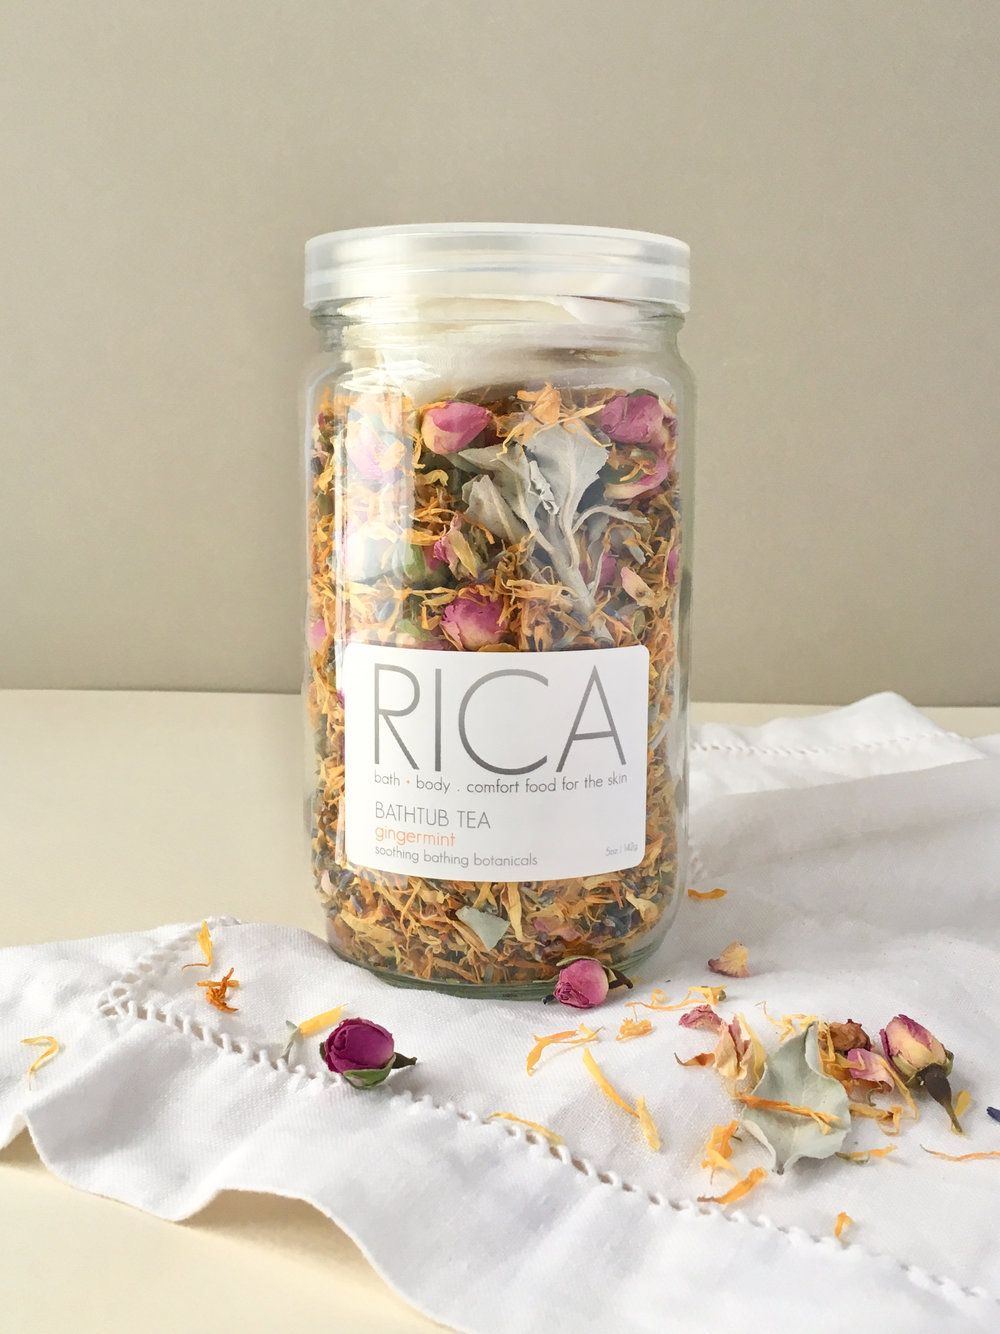 RICA bath + body Bathtub Tea Gingermint Rectangle.jpg